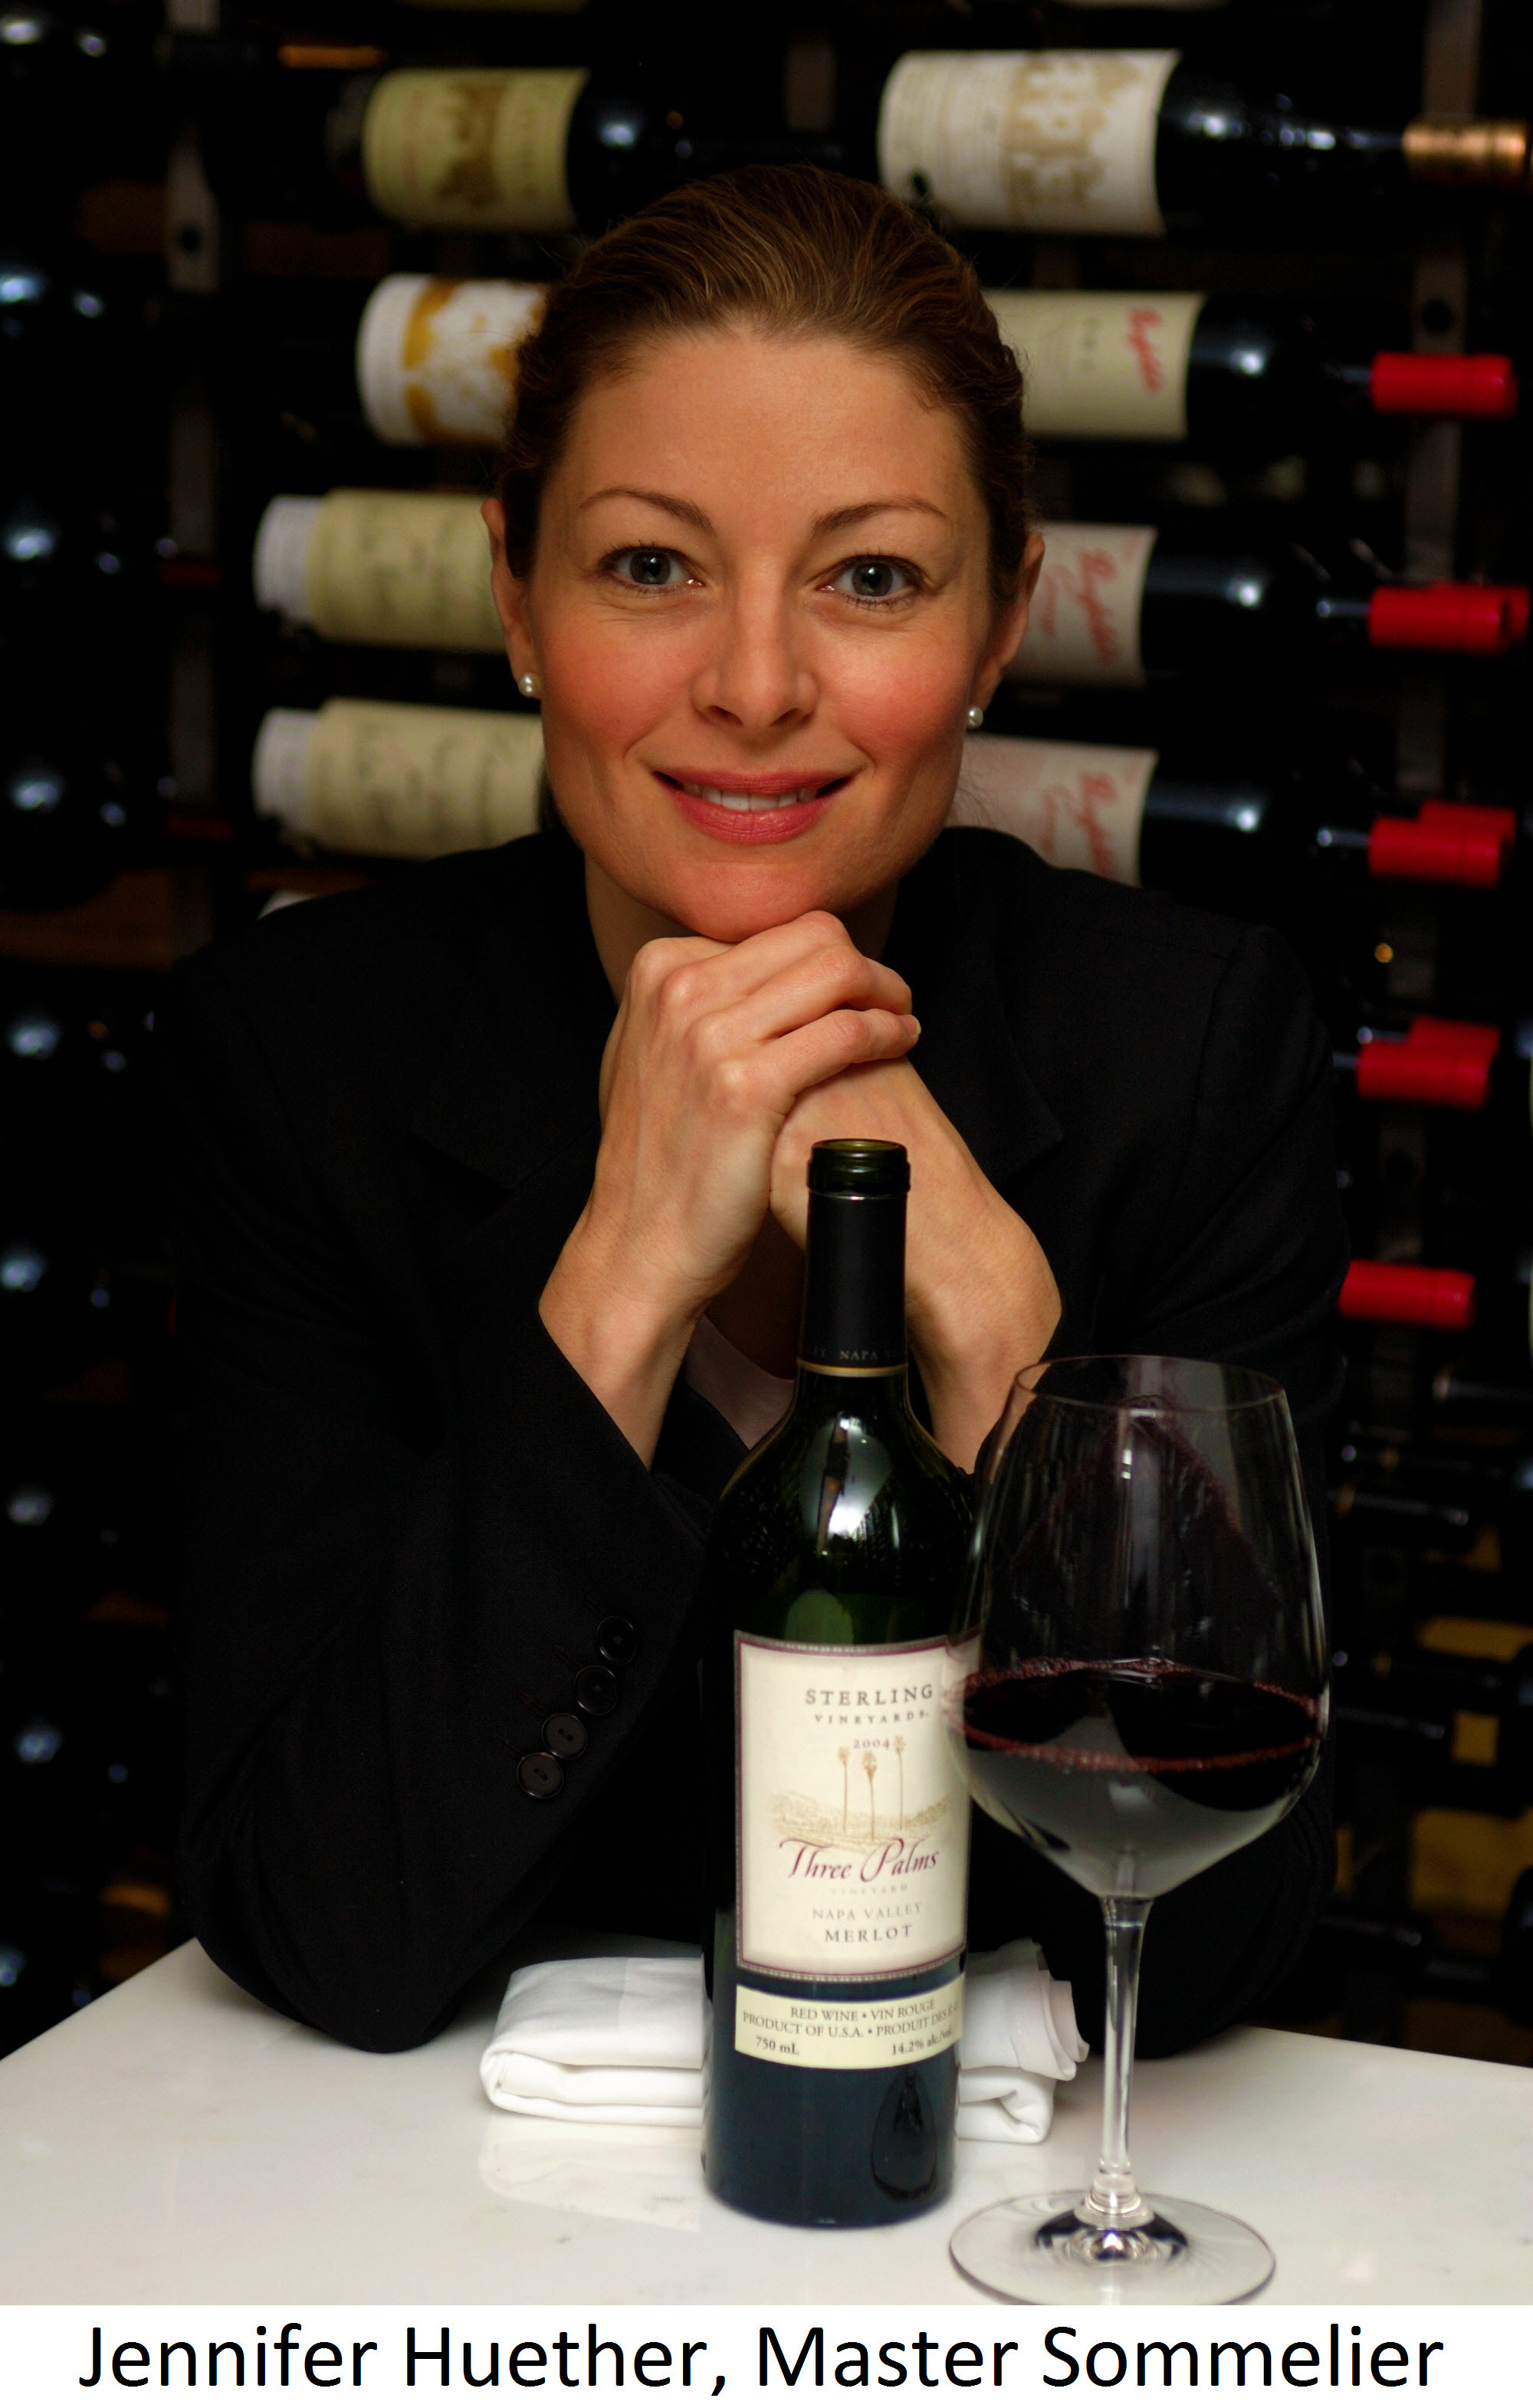 Jennifer Huether, Master Sommelier